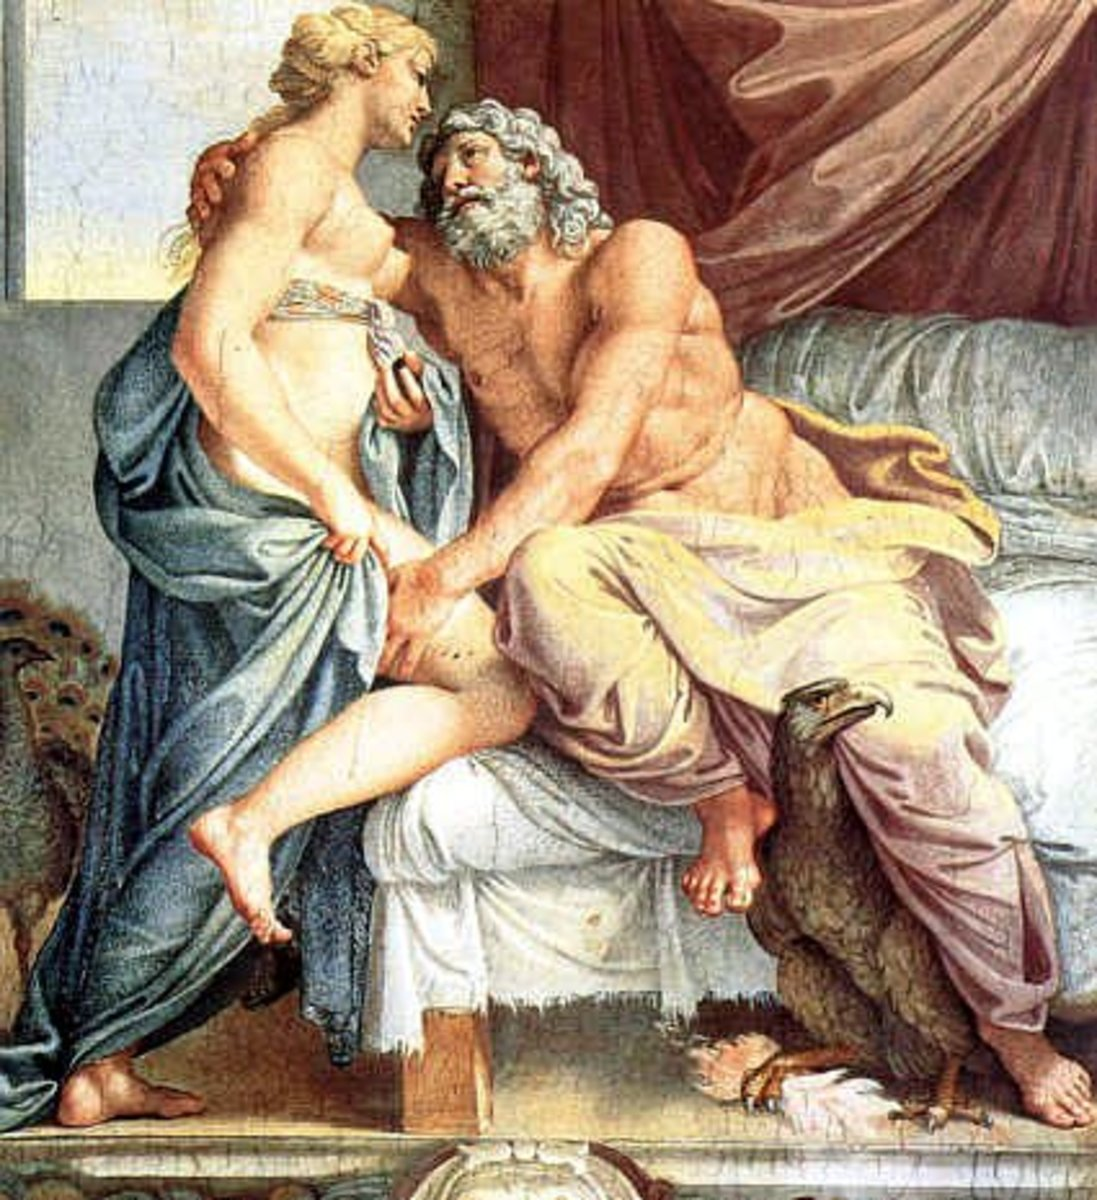 Roman god Jupiter and Junon - Rome seeks to lure Gaul into servitude